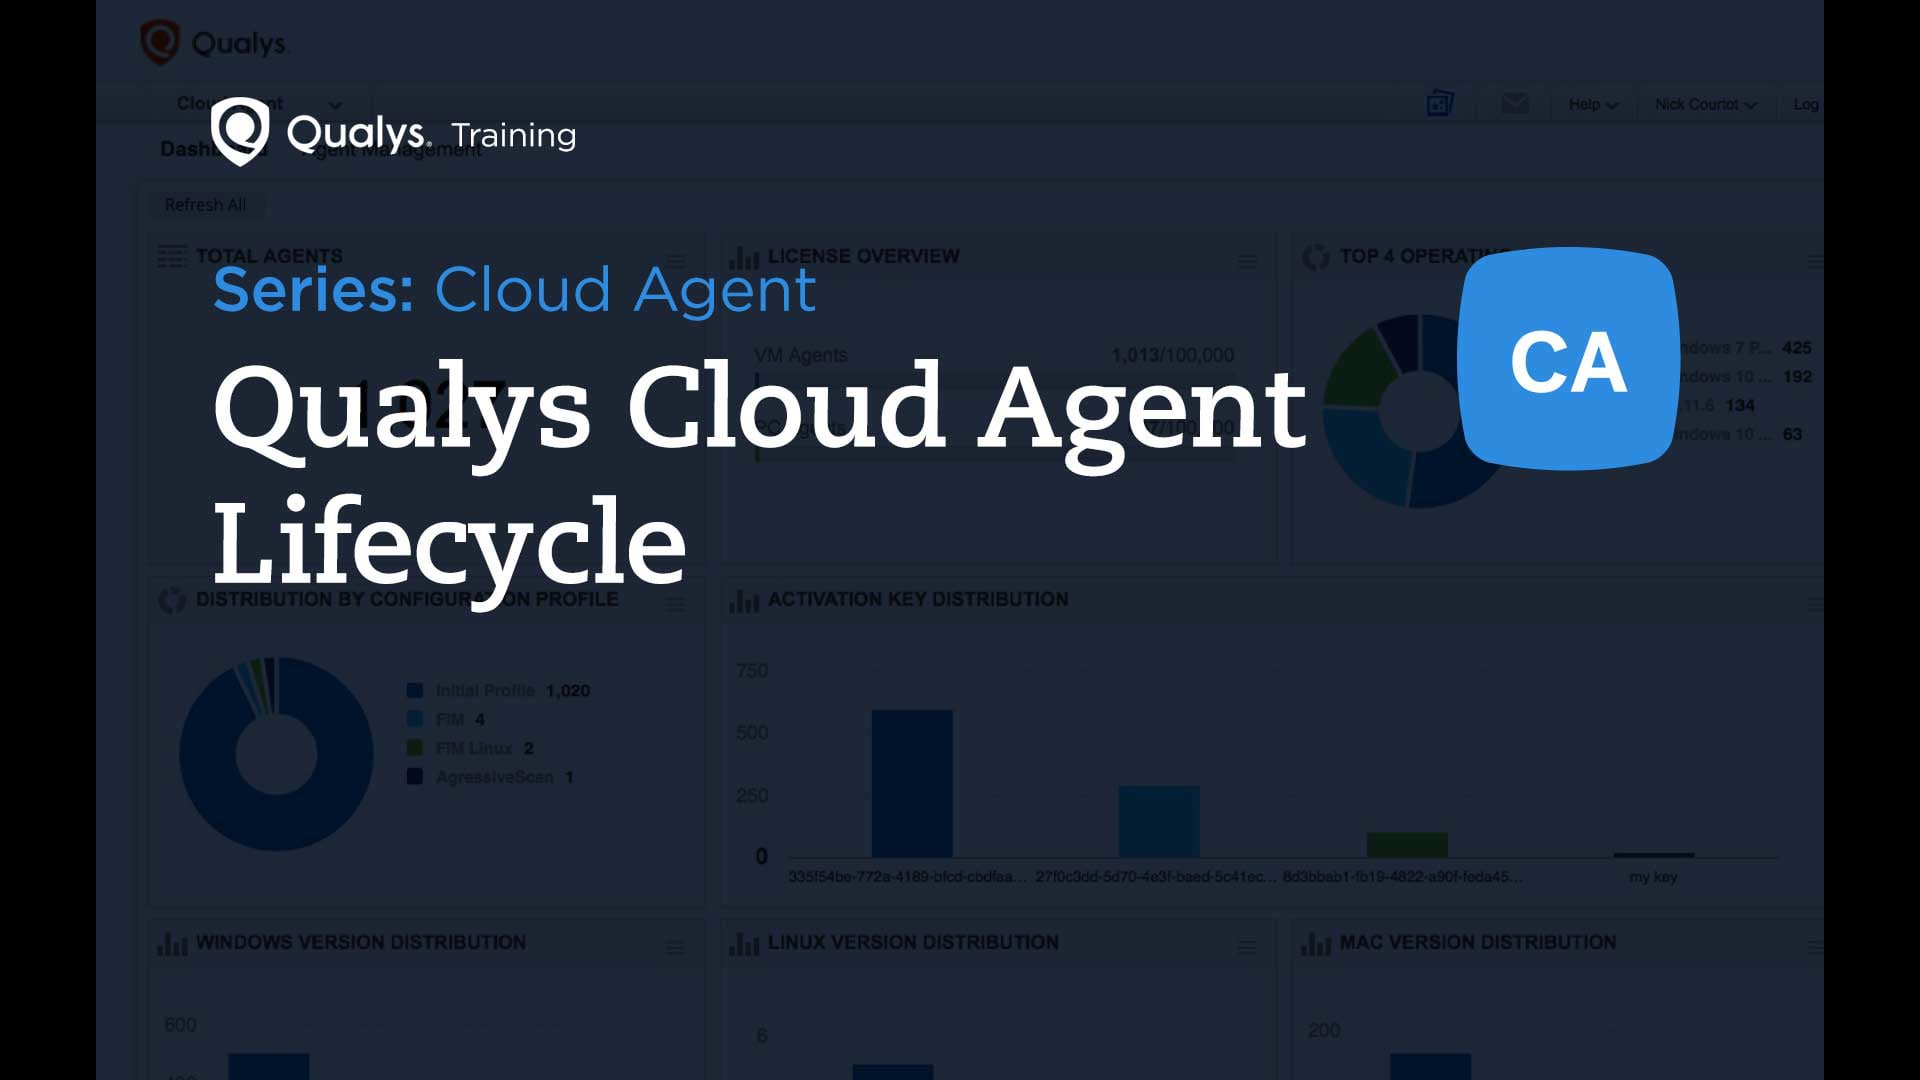 Qualys Cloud Agent Lifecycle